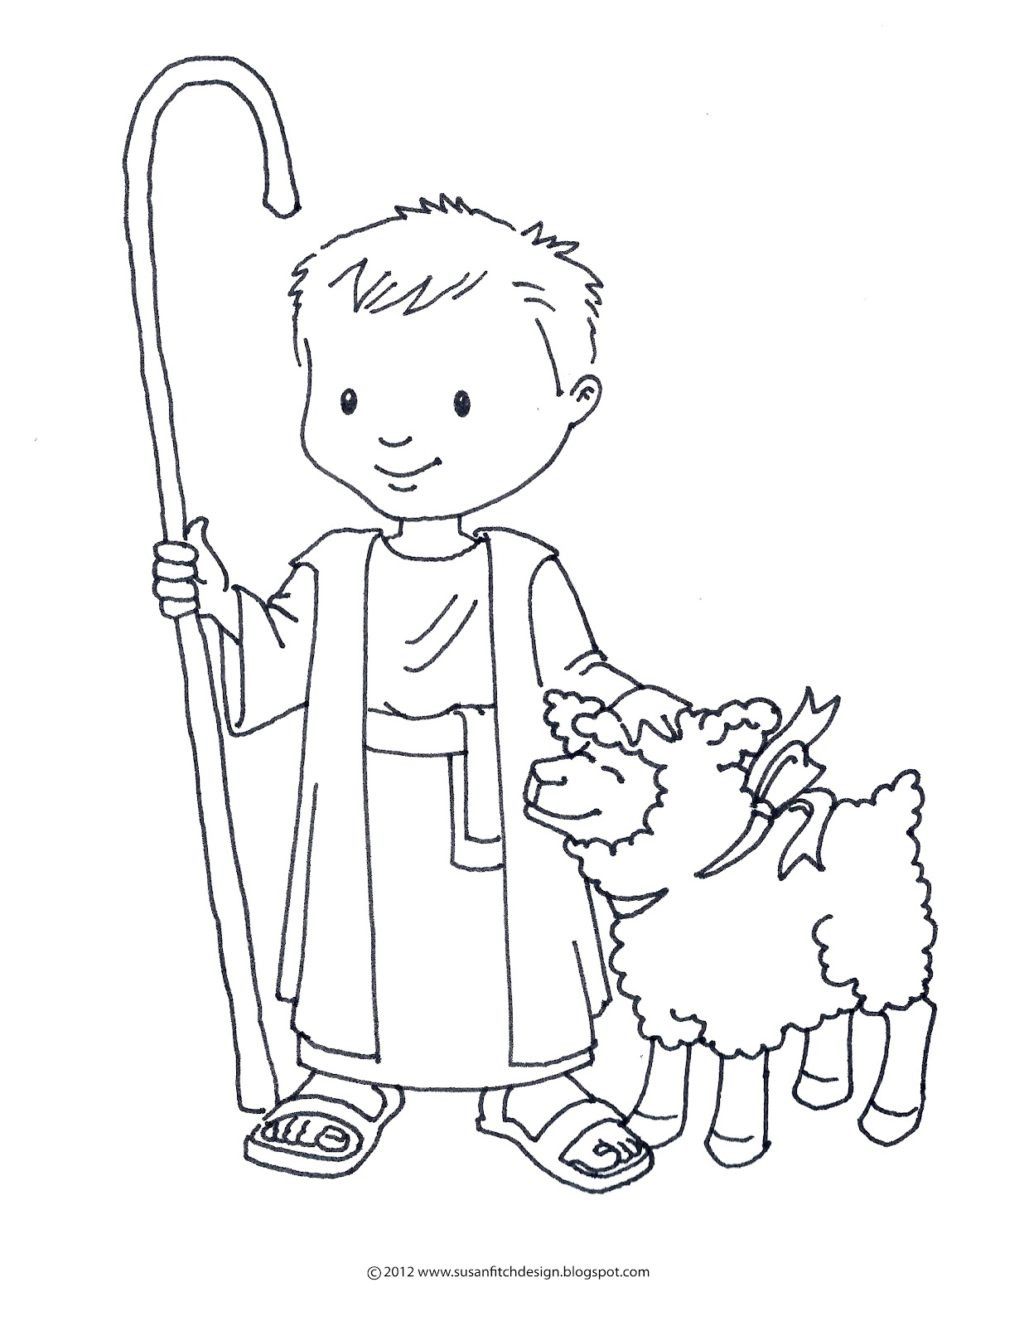 Shepherds Coloring Pages  The Good Shepherd Book Coloring Pages Adult German Boy